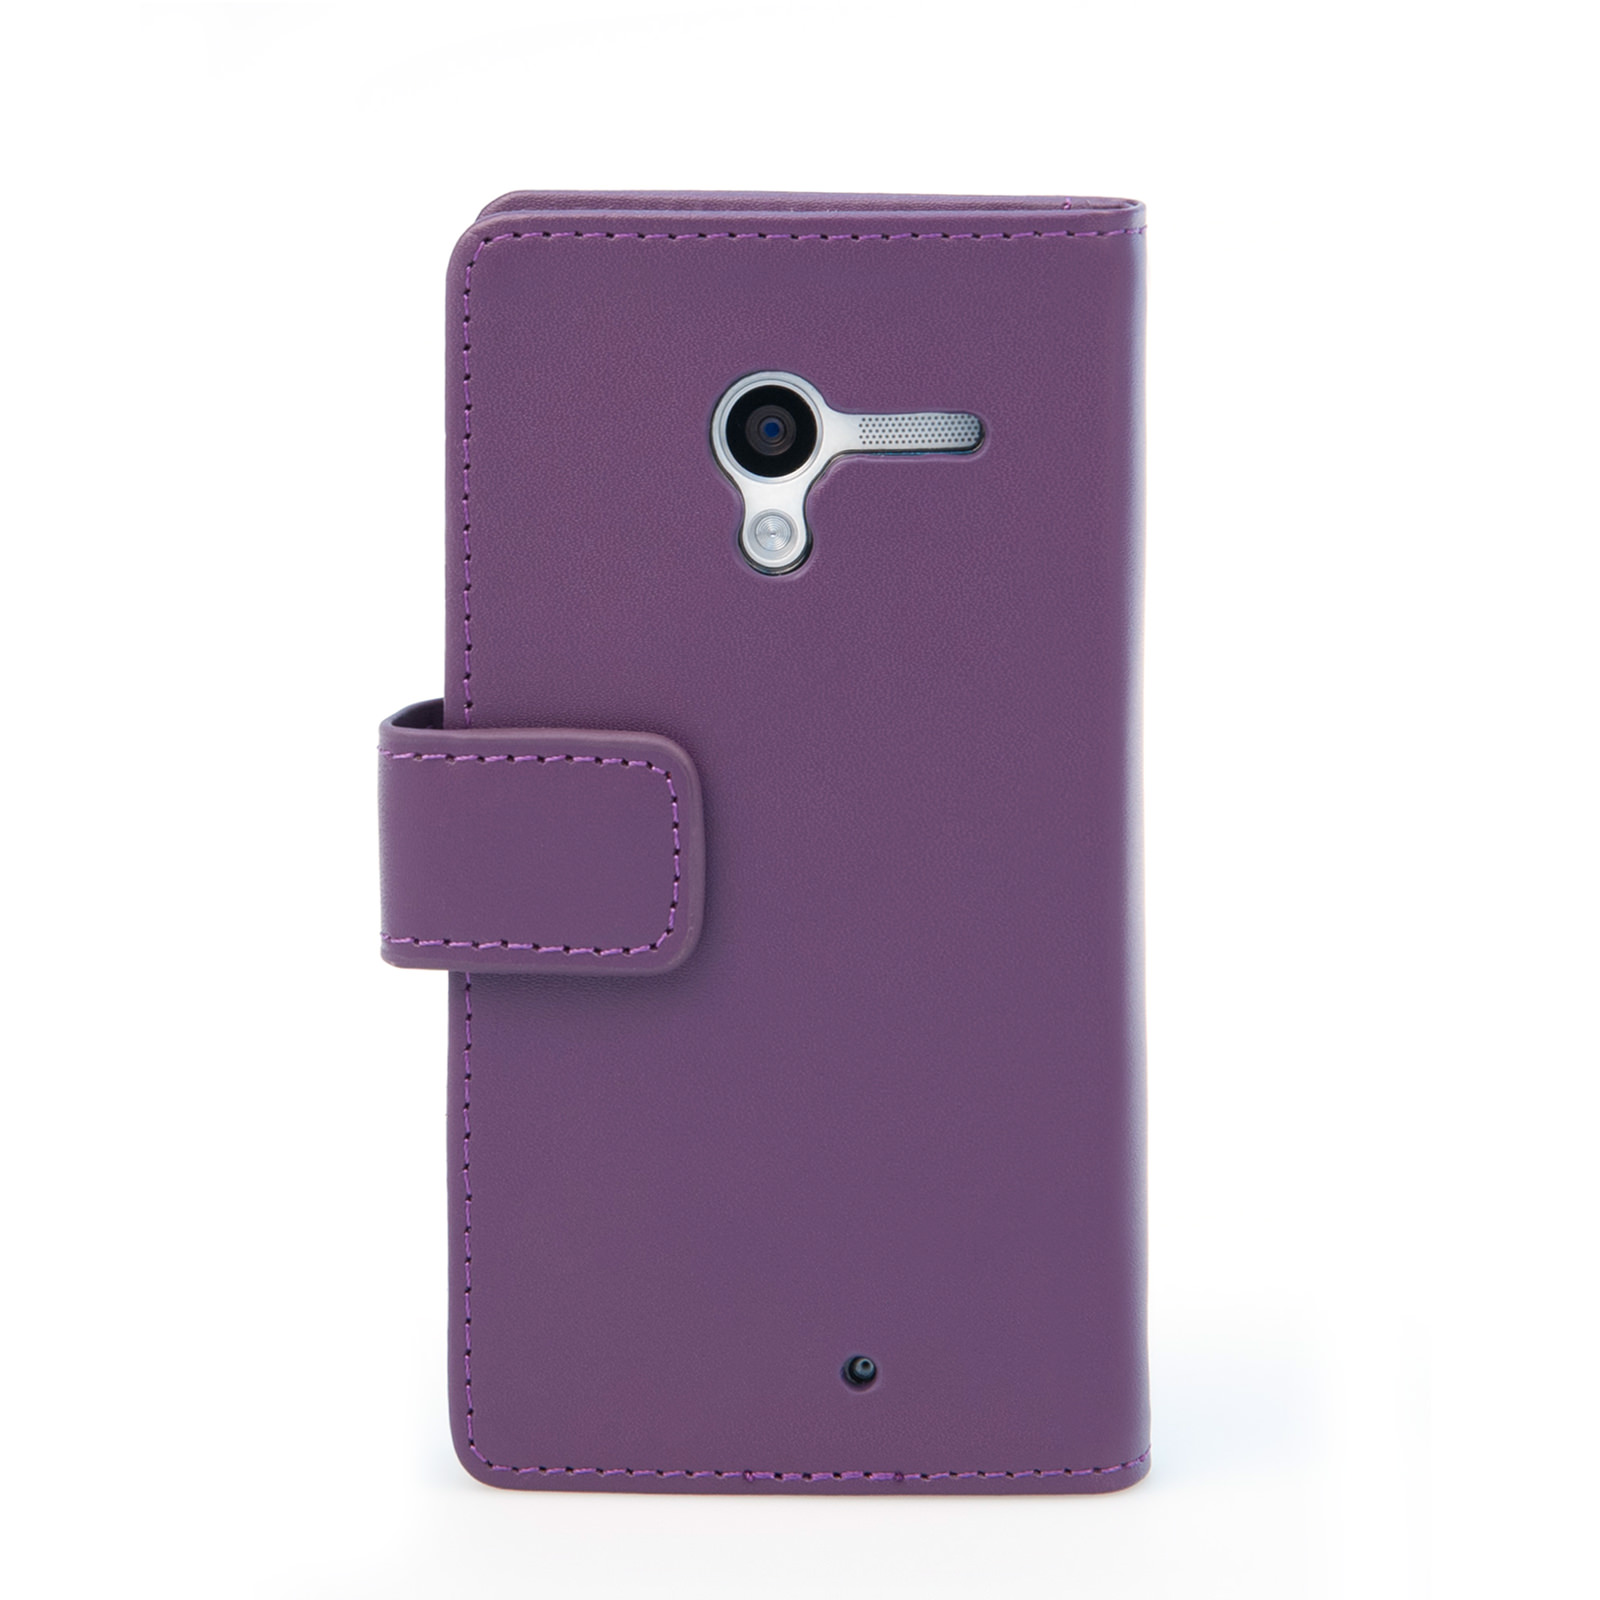 YouSave Motorola Moto X Leather-Effect Wallet Case - Purple